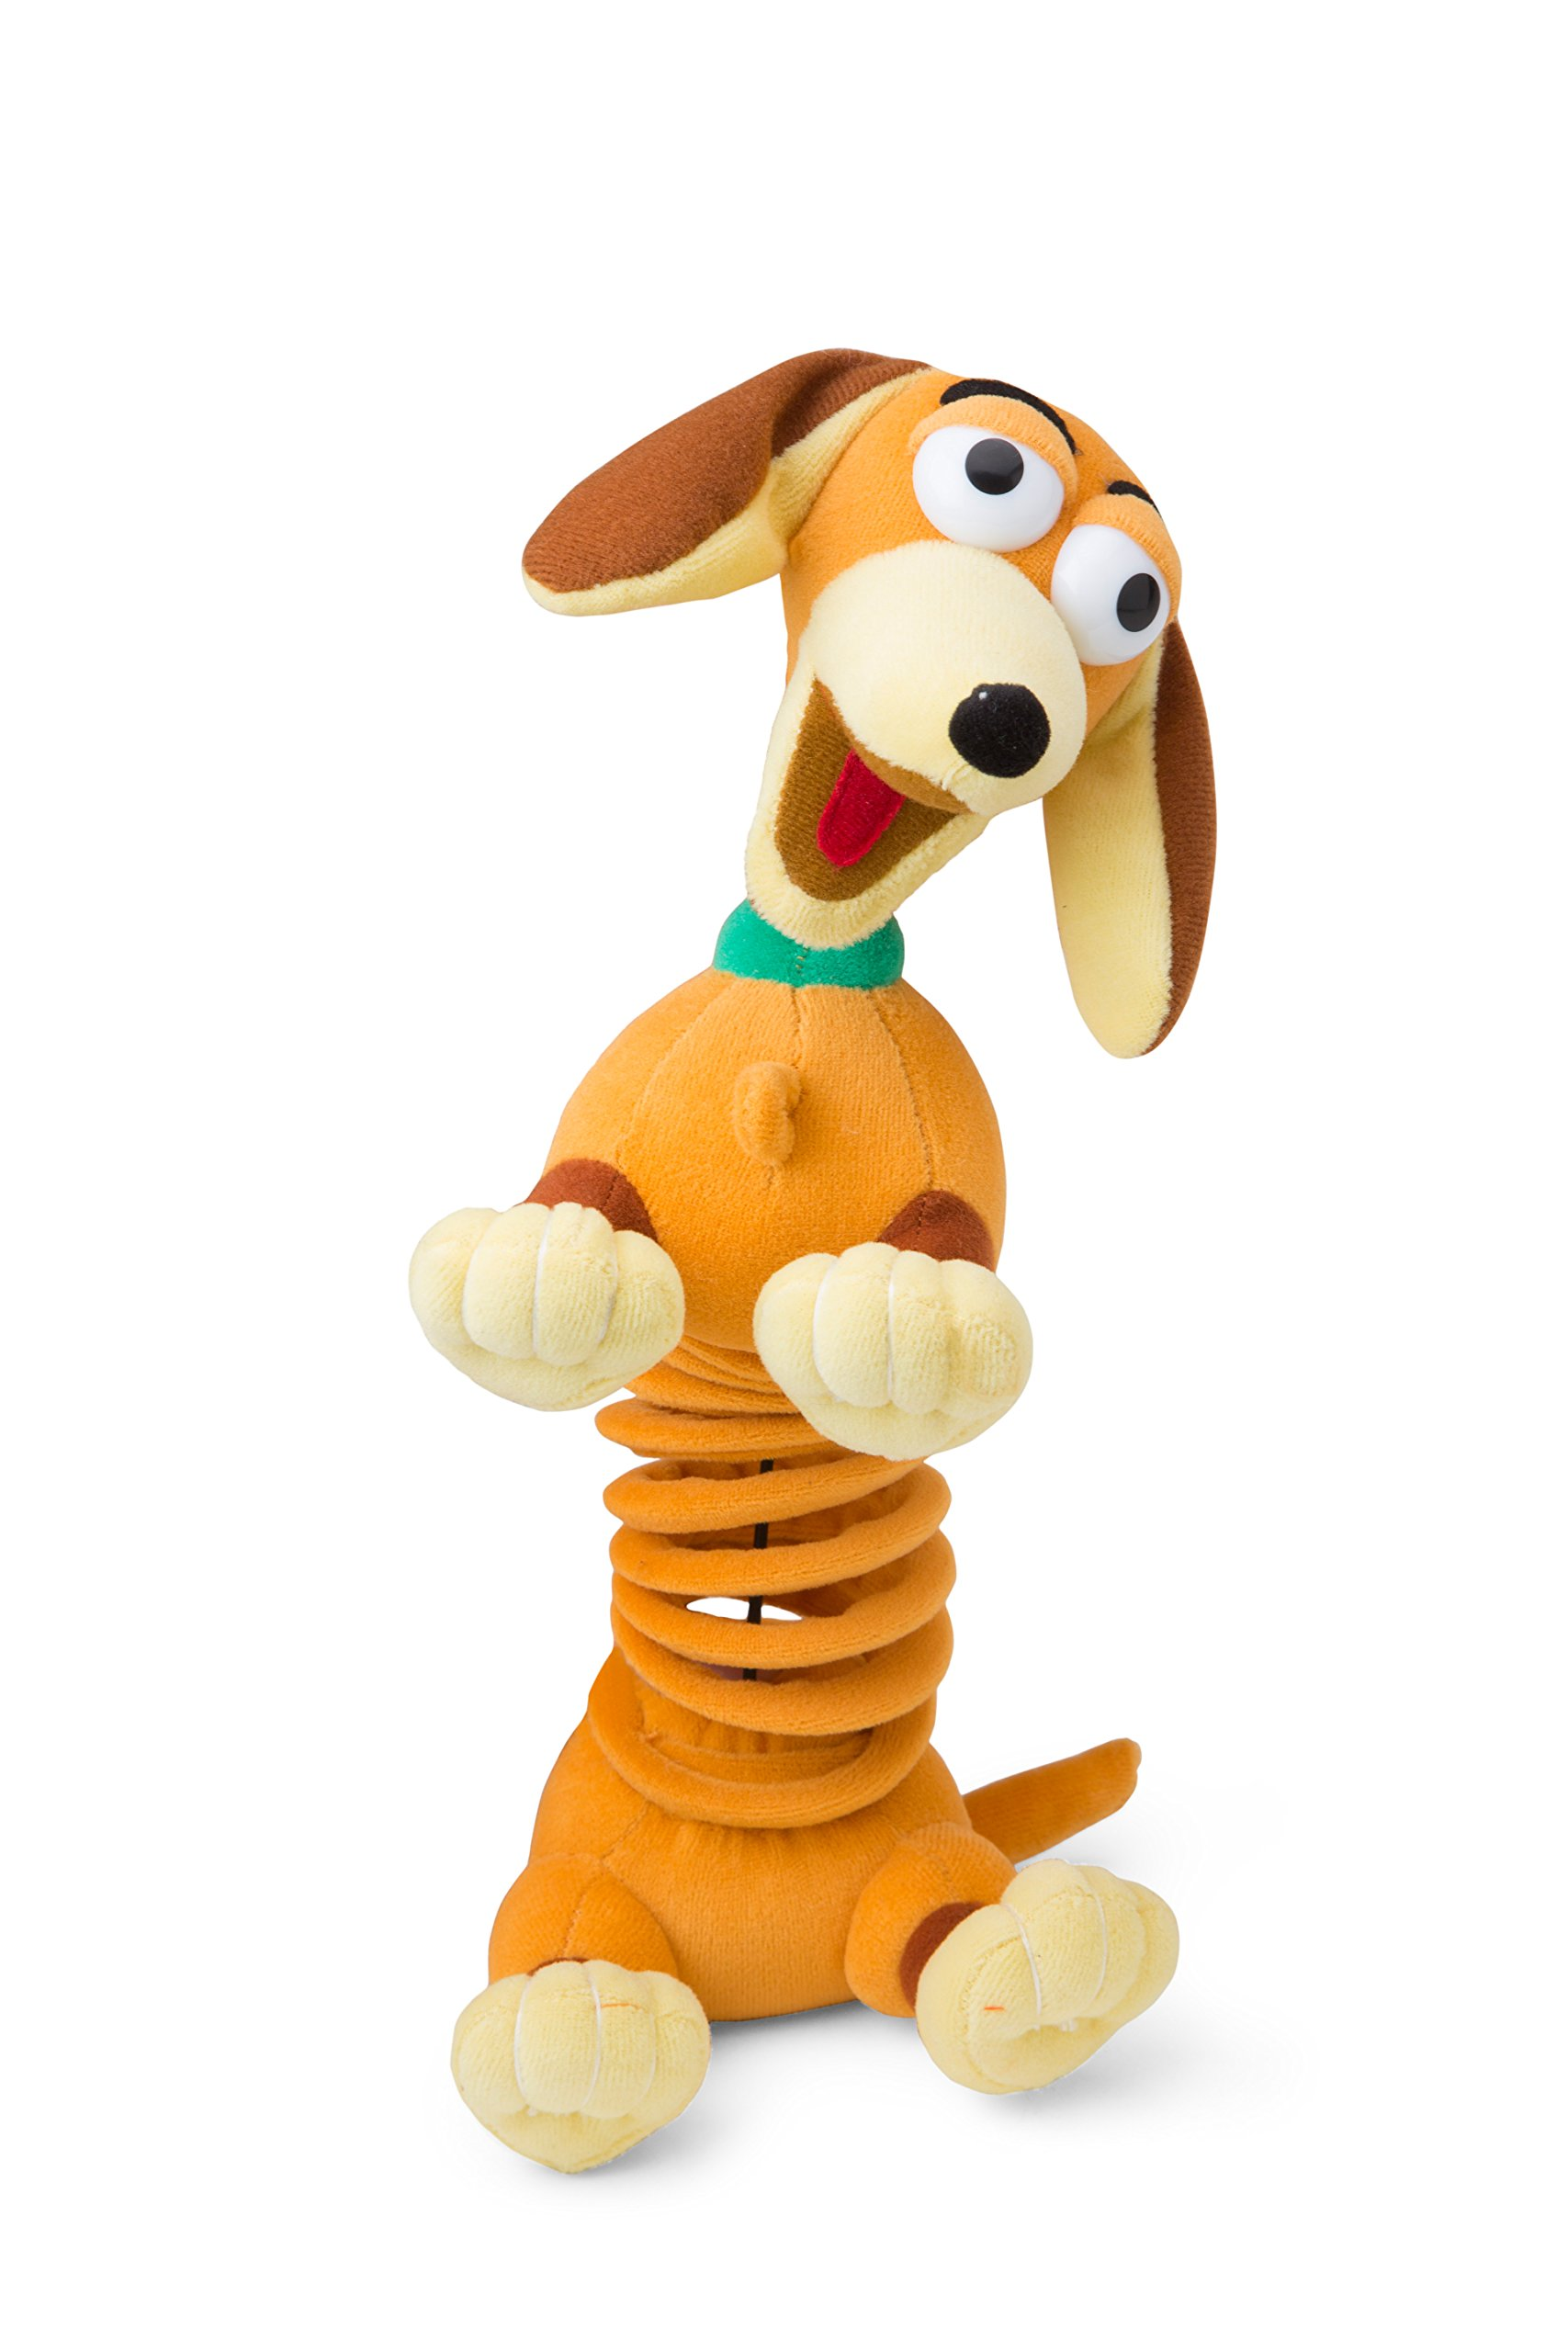 Disney Pixar Toy Story Slinky Dog Jr Plush by Slinky (Image #2)